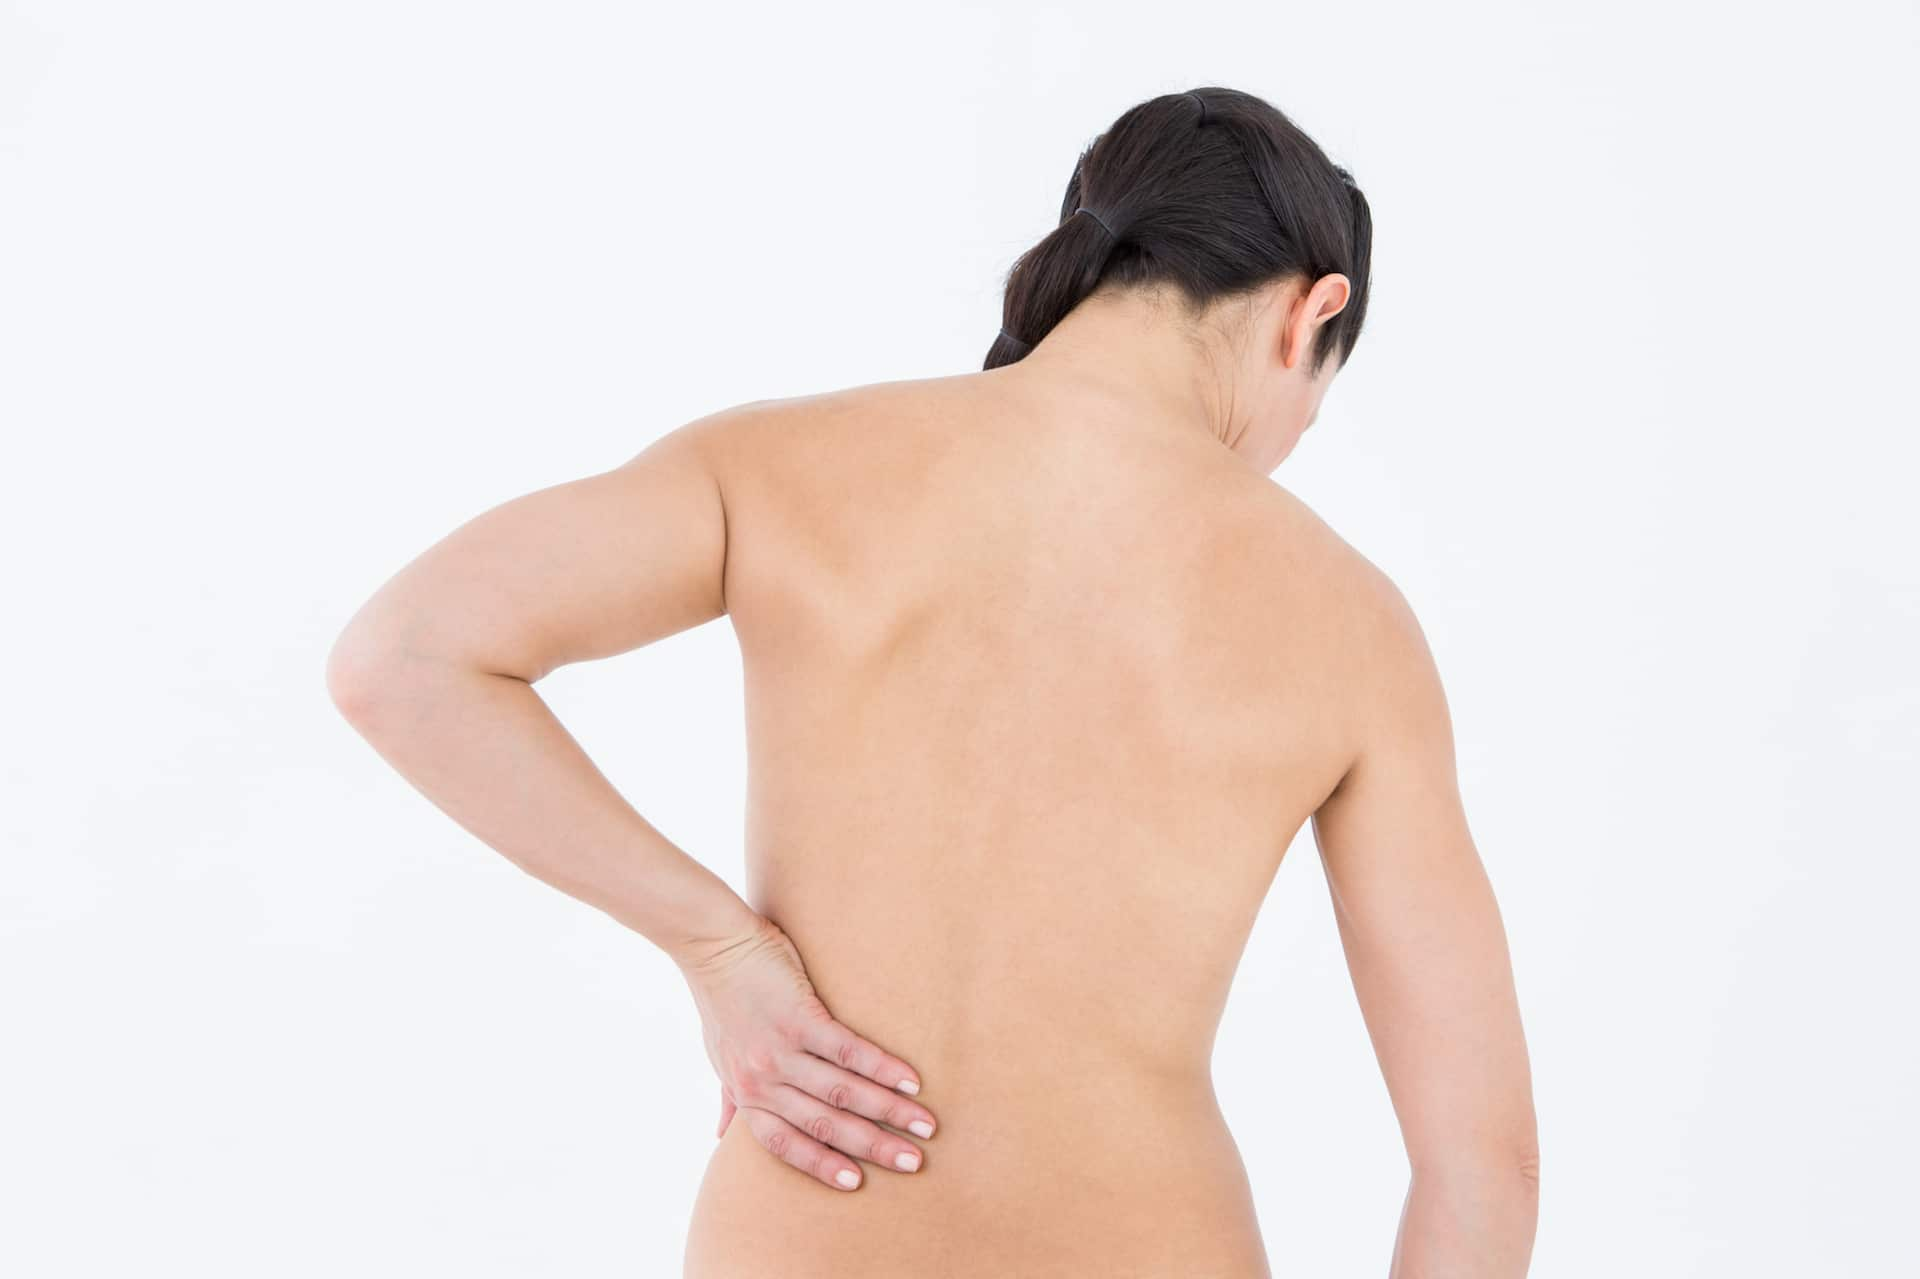 back pain left hand on hip